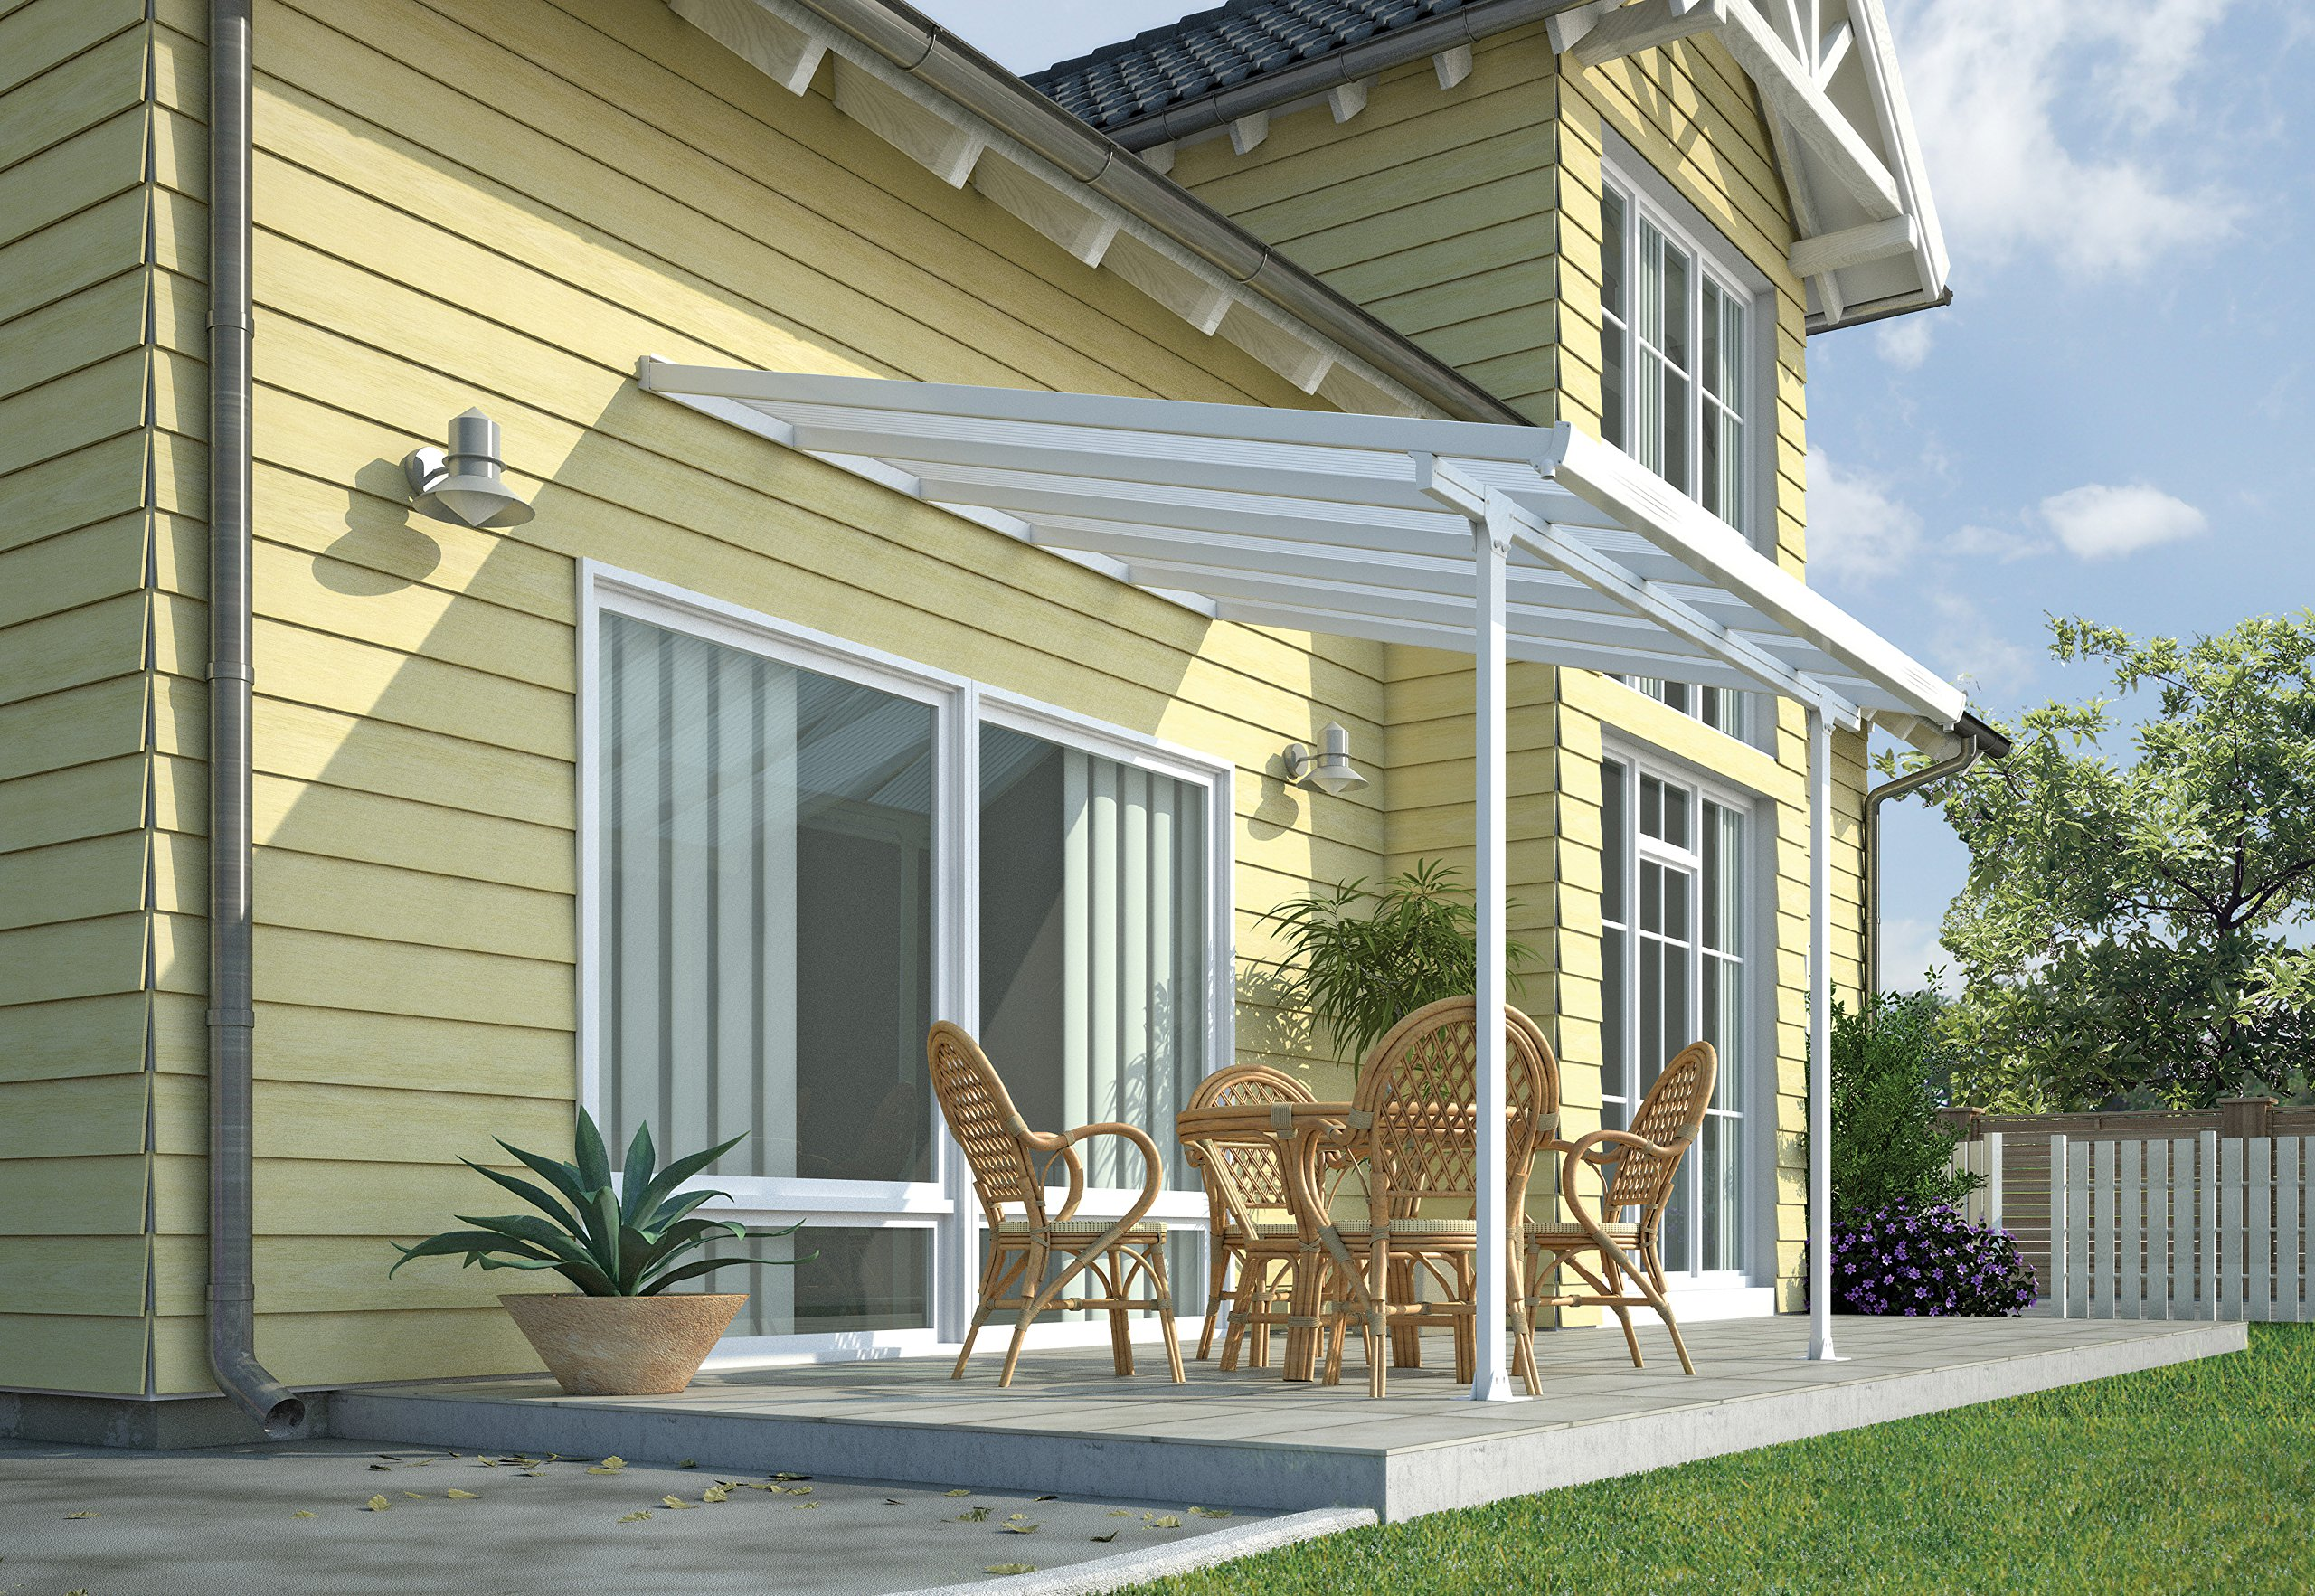 Palram Pergola Patio Cover Feria 3 x 3.05m with Robust Structure for Year-Round  sc 1 st  Amazon UK & Patio Canopy: Amazon.co.uk